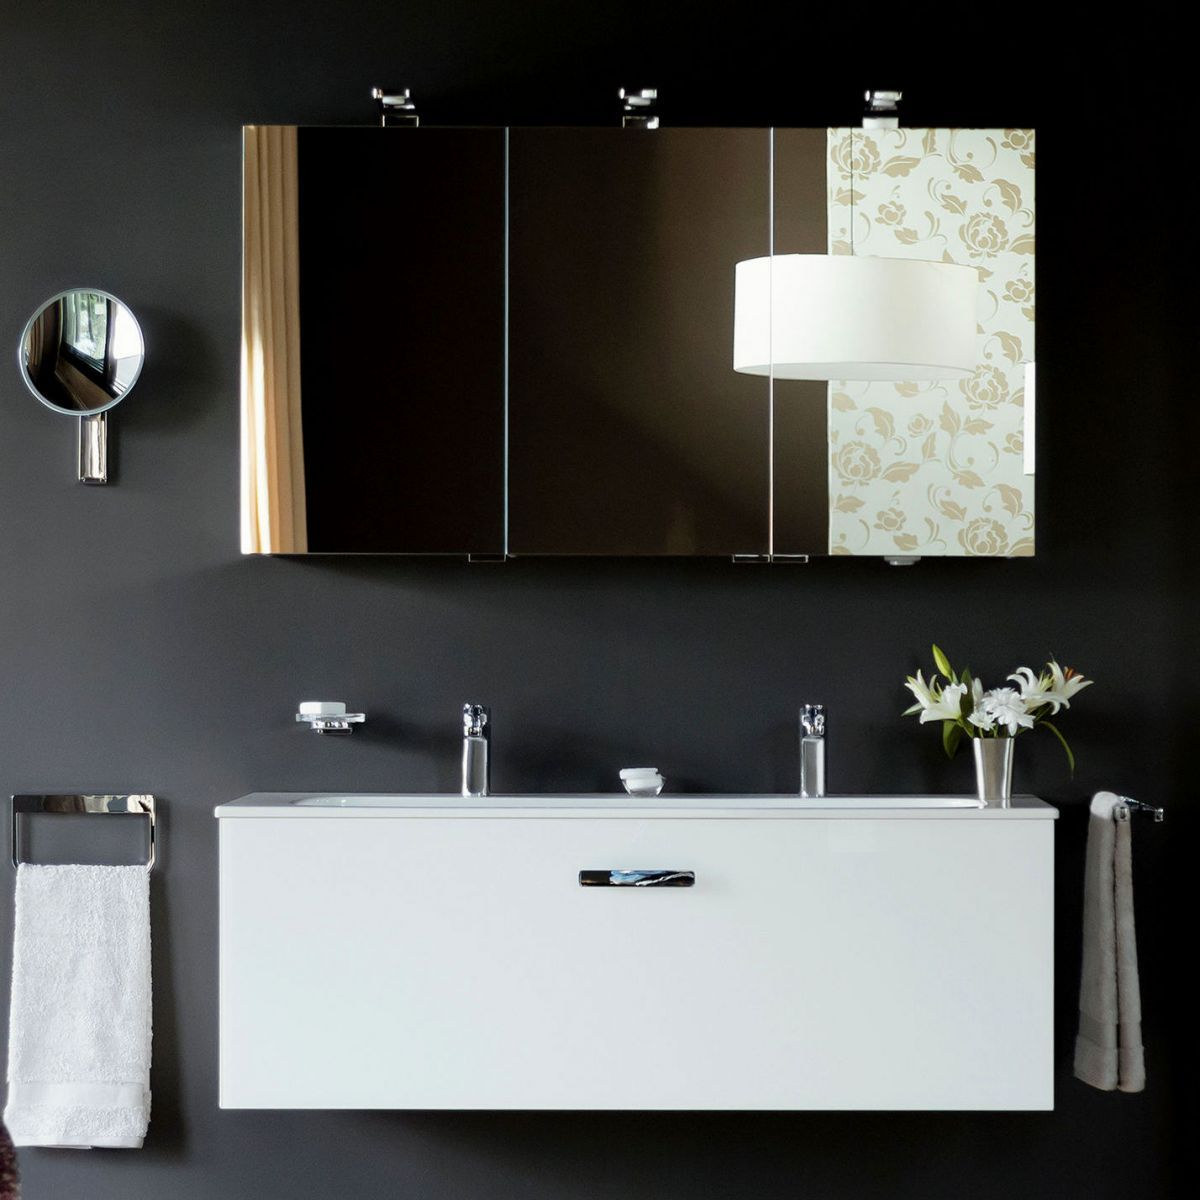 keuco royal universe illuminated mirror cabinet keuco bathroom mirror bathroom pinspiration pinterest illuminated mirrors mirror cabinets and - Bathroom Cabinets Keuco